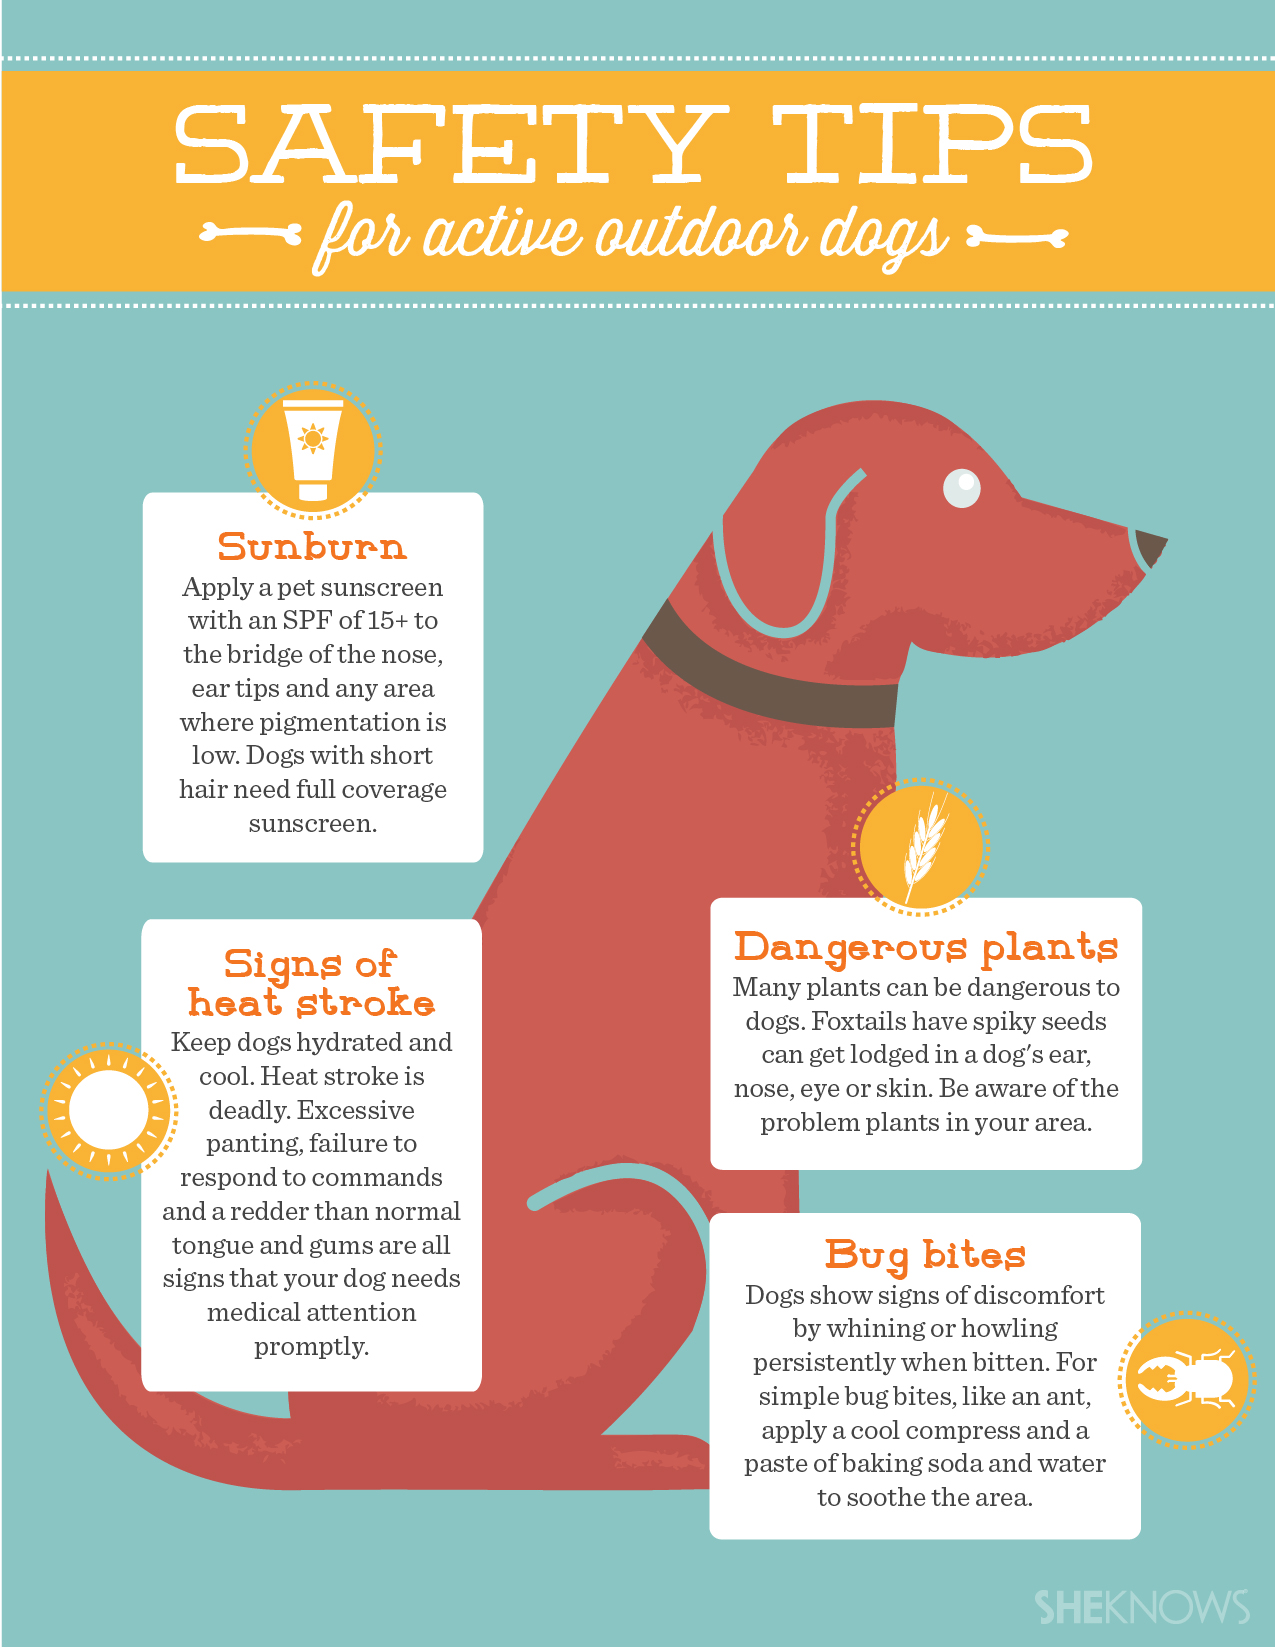 5 Tips To Keep Your Active Outdoor Dog Safe This Summer